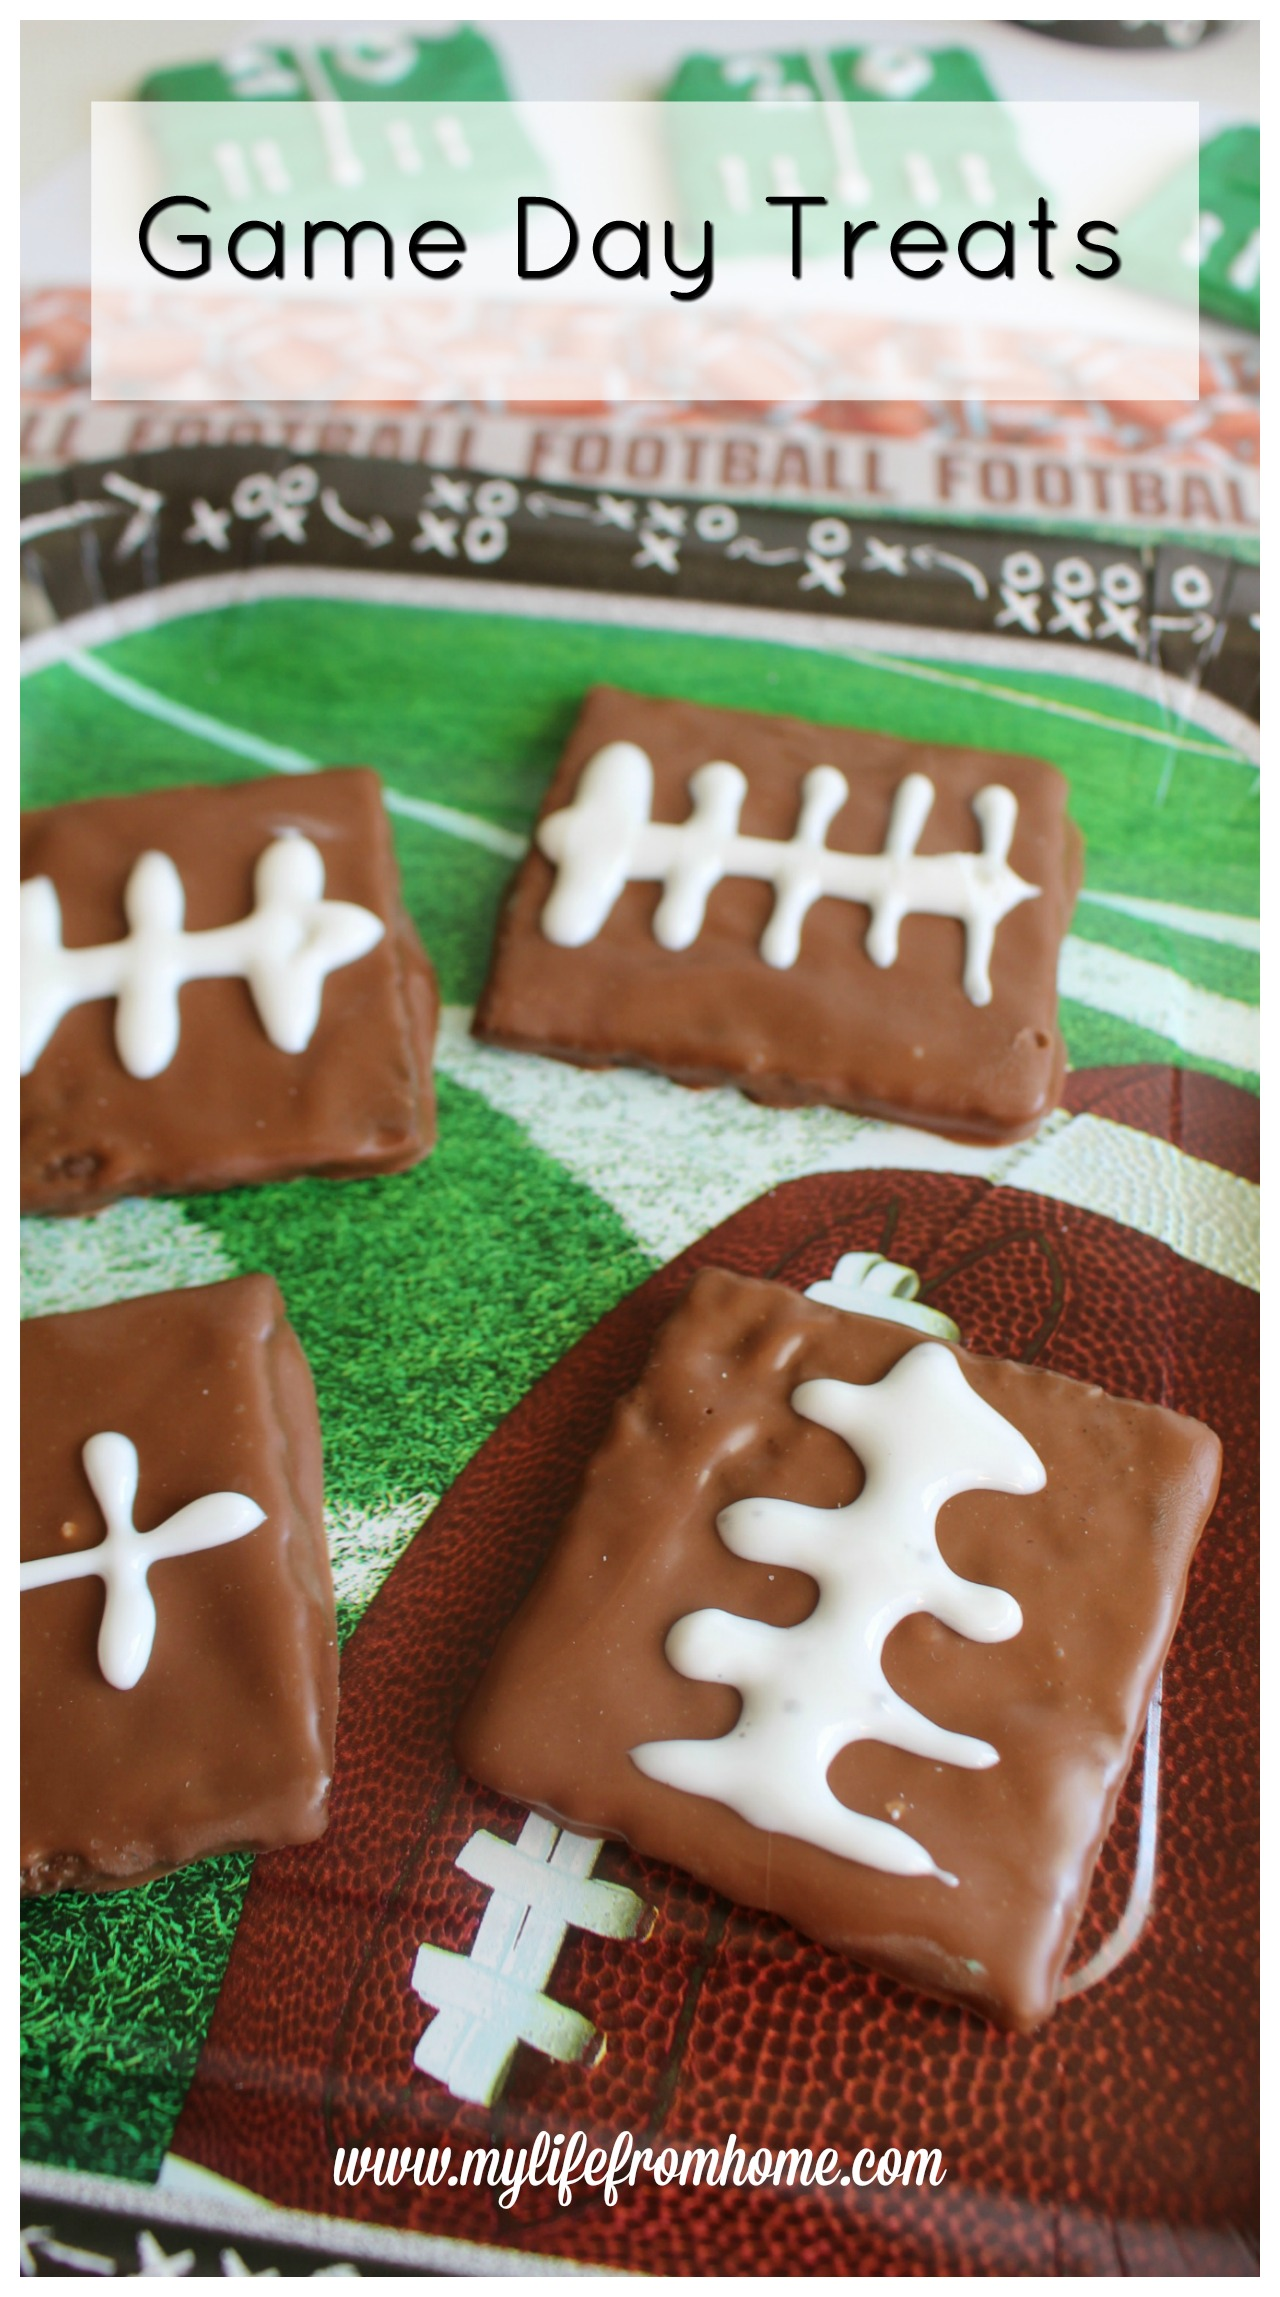 Game Day Treats by www.mylifefromhome.com